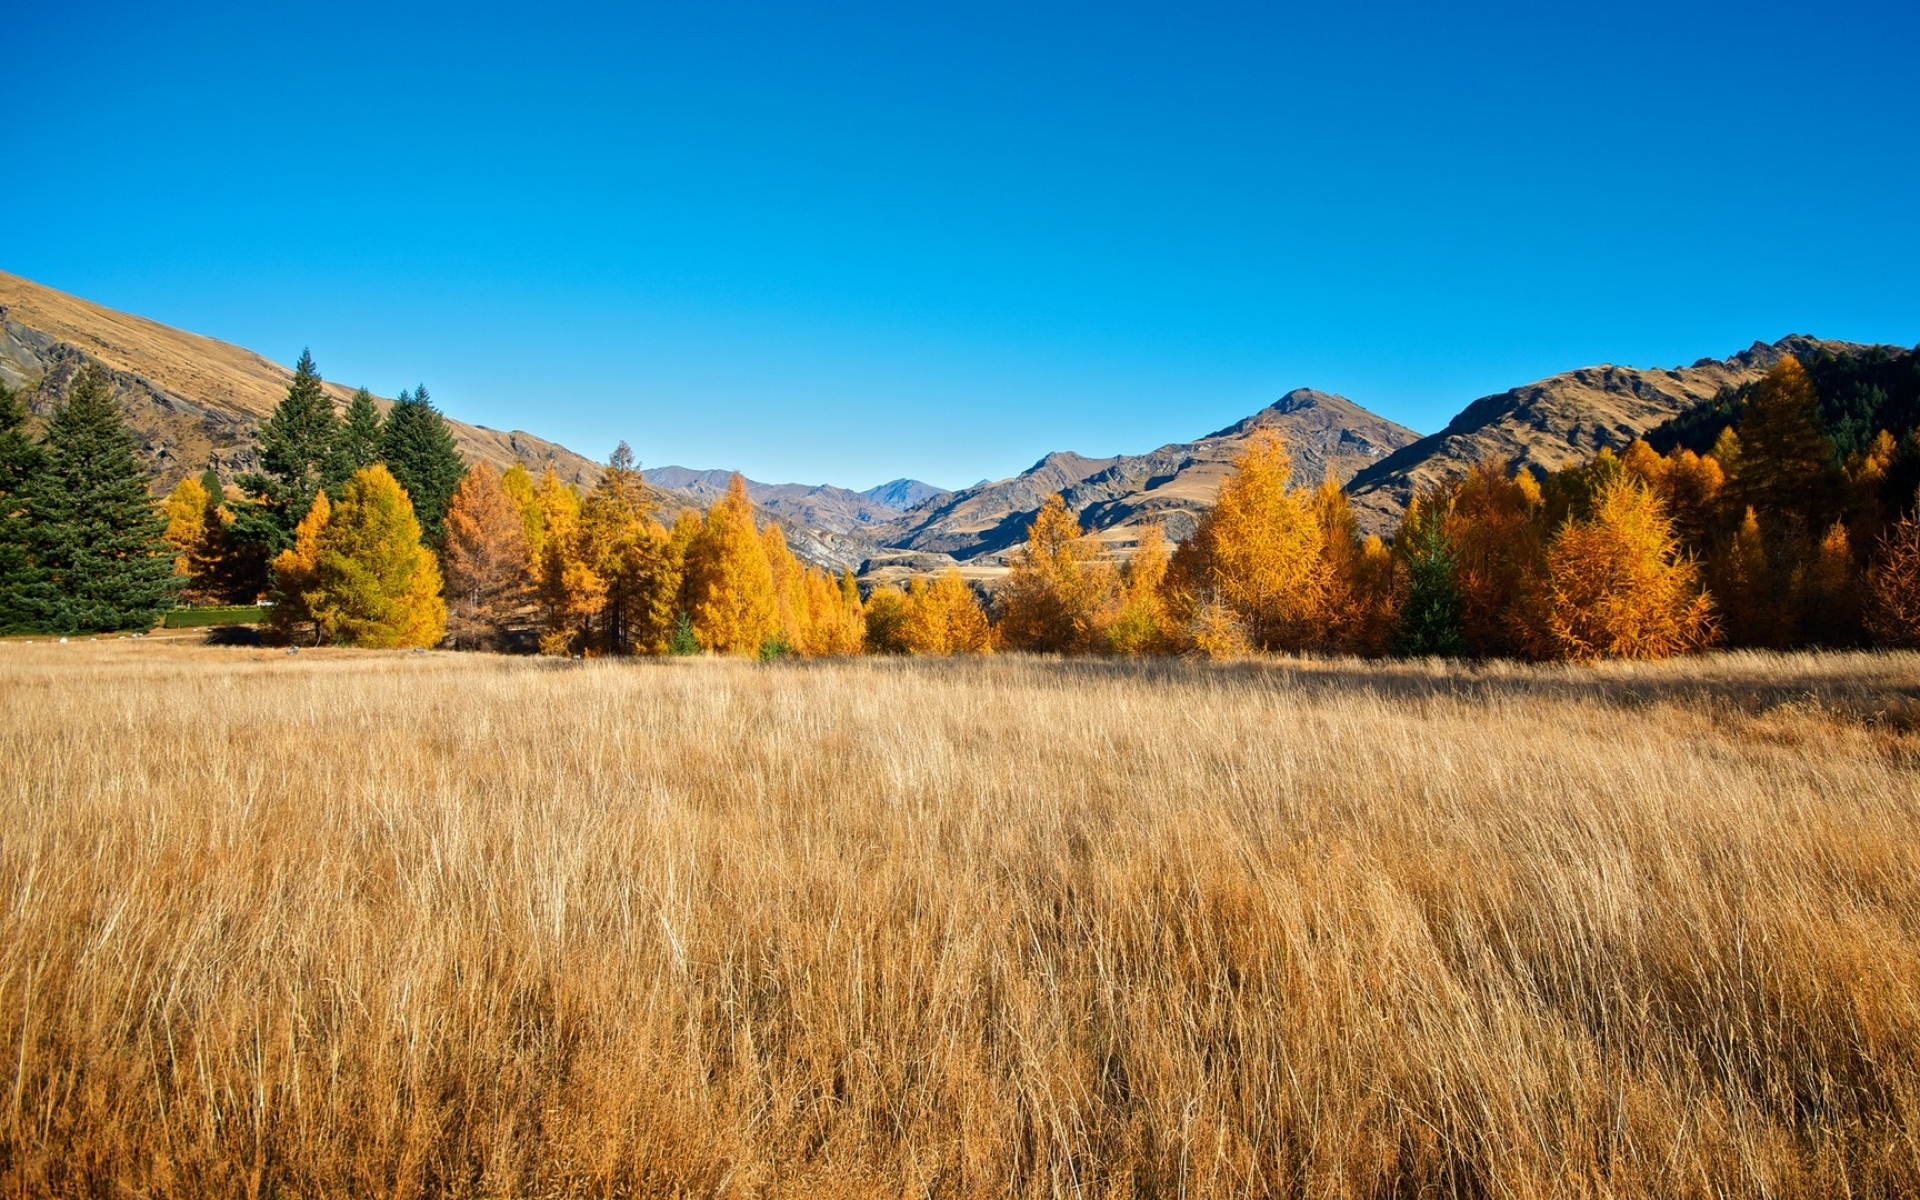 Free Fall Wallpaper Downloads Autumn Trees Field Amp Canyon Wallpapers Autumn Trees